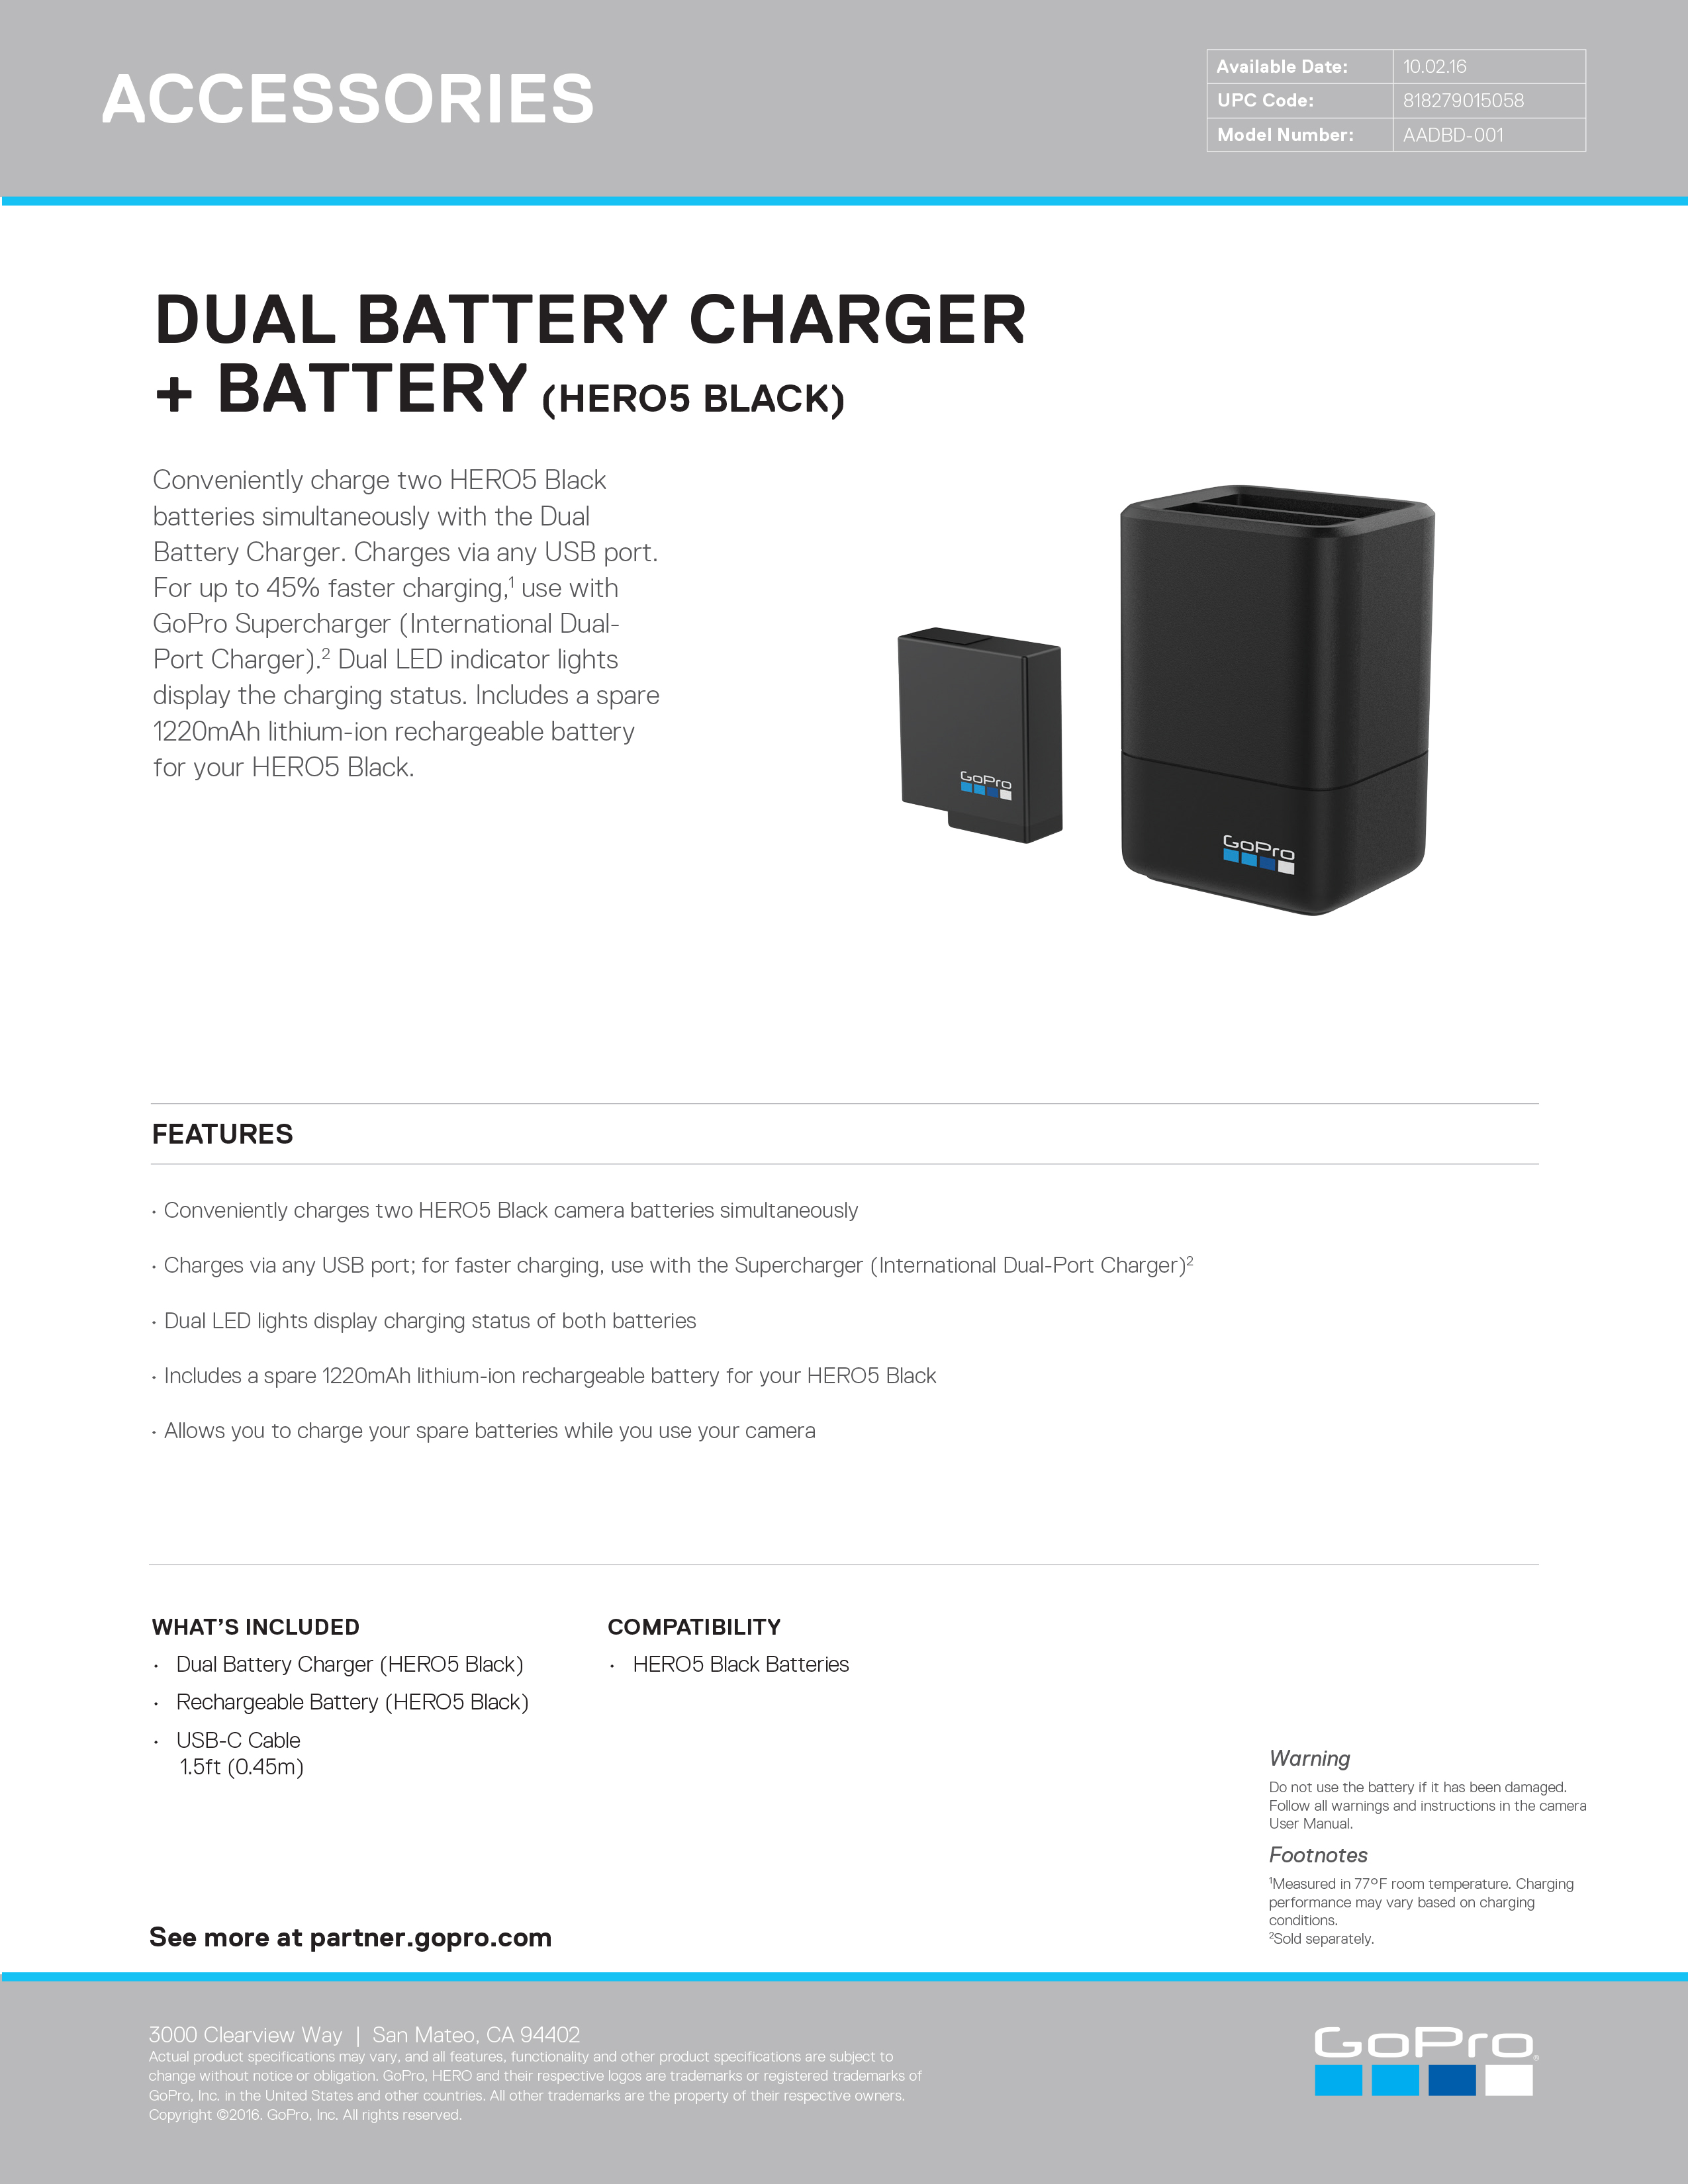 26627970 Dual Battery ChargerBattery HERO5 Black Sell Sheet master